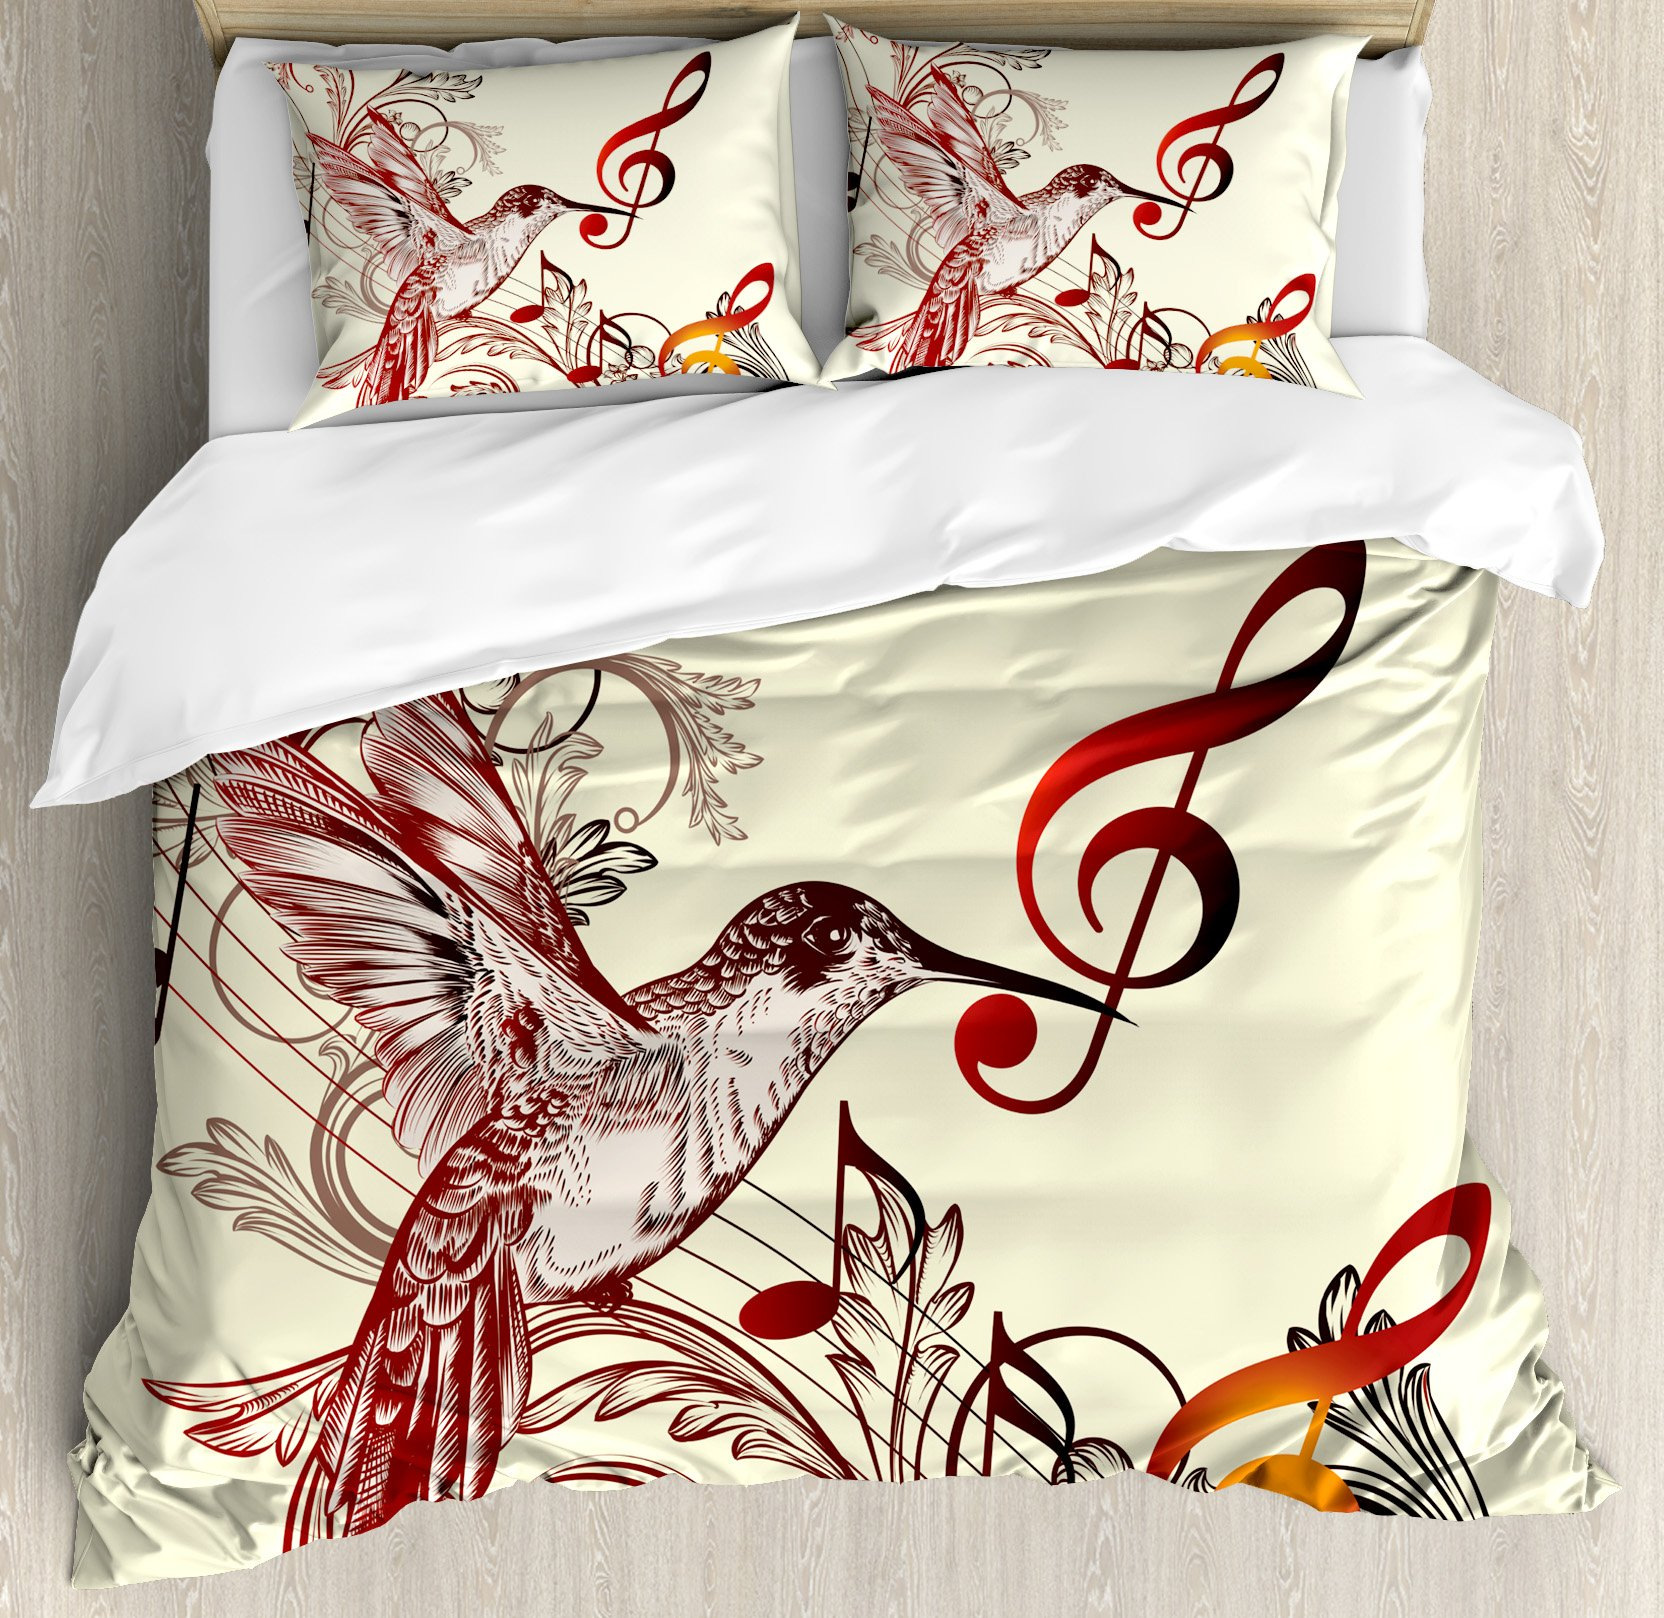 Hummingbirds Decorations King Size Duvet Cover Set by Ambesonne, Flying Bird and Music Notes Clef Five Line Staff Musical Creative Artistic Ornate, Decorative 3 Piece Bedding Set with 2 Pillow Shams